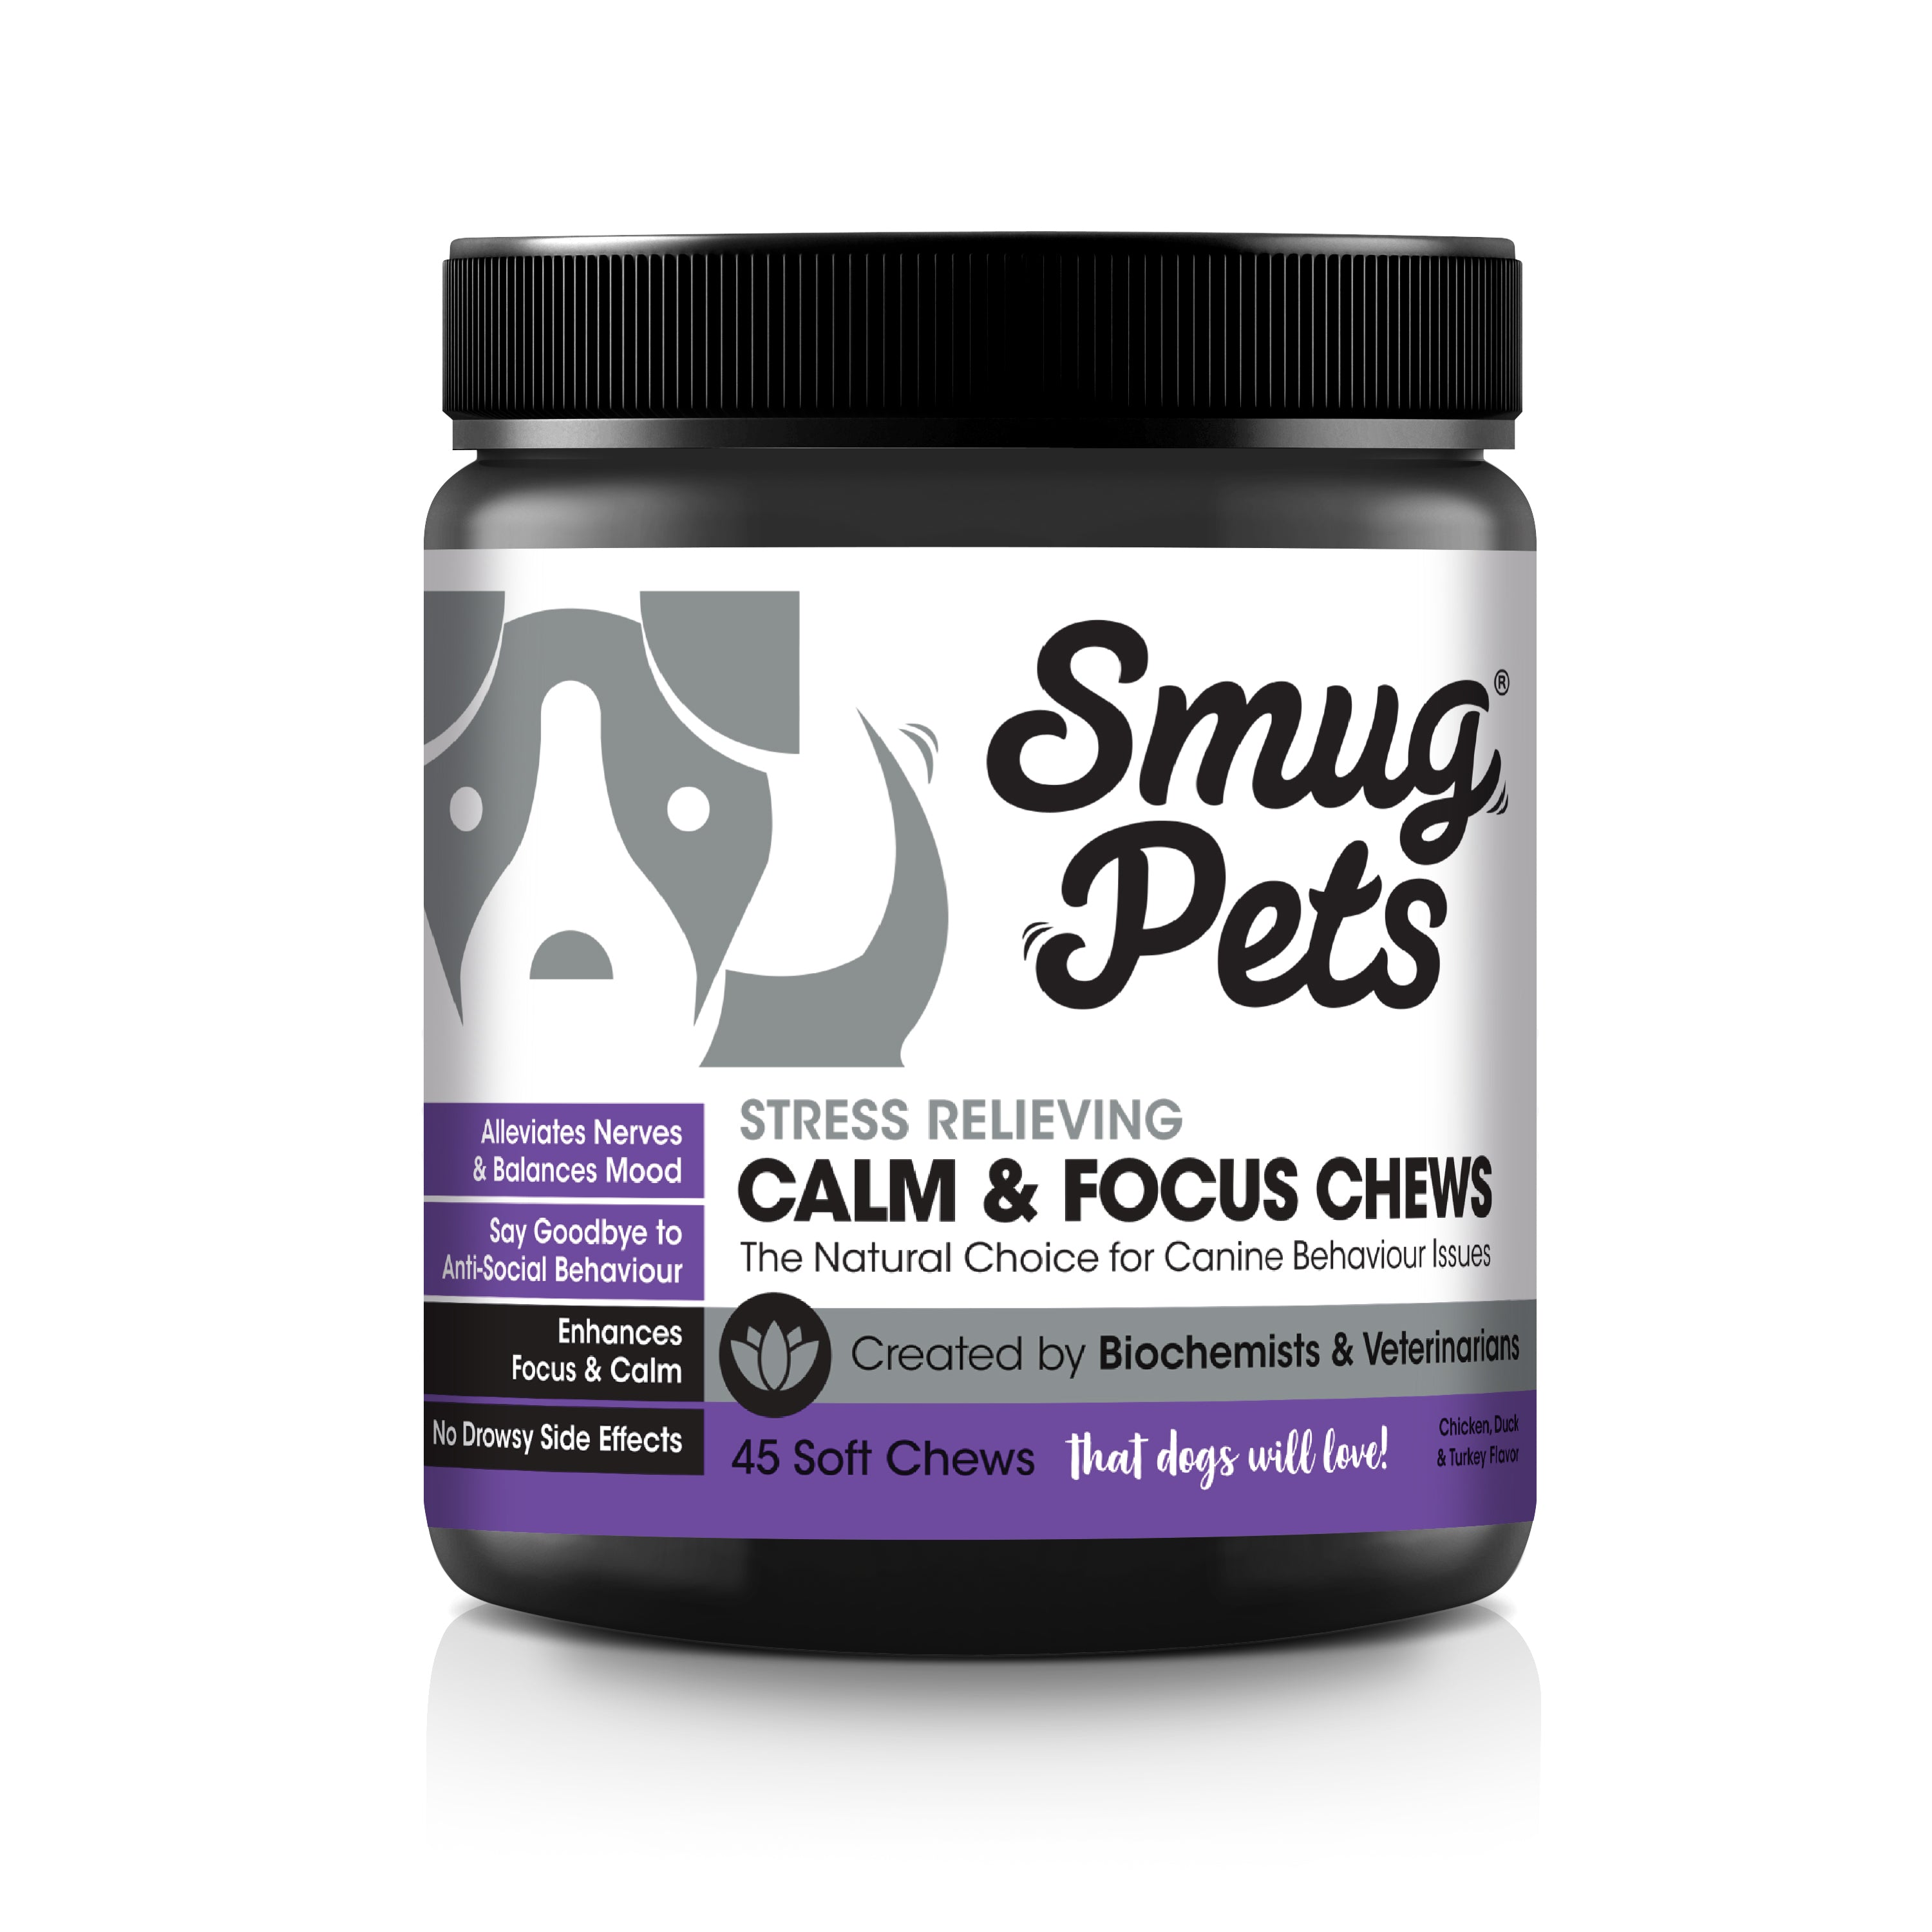 SmugPets Calming Pet Chews for Anxiety Relief for Dogs